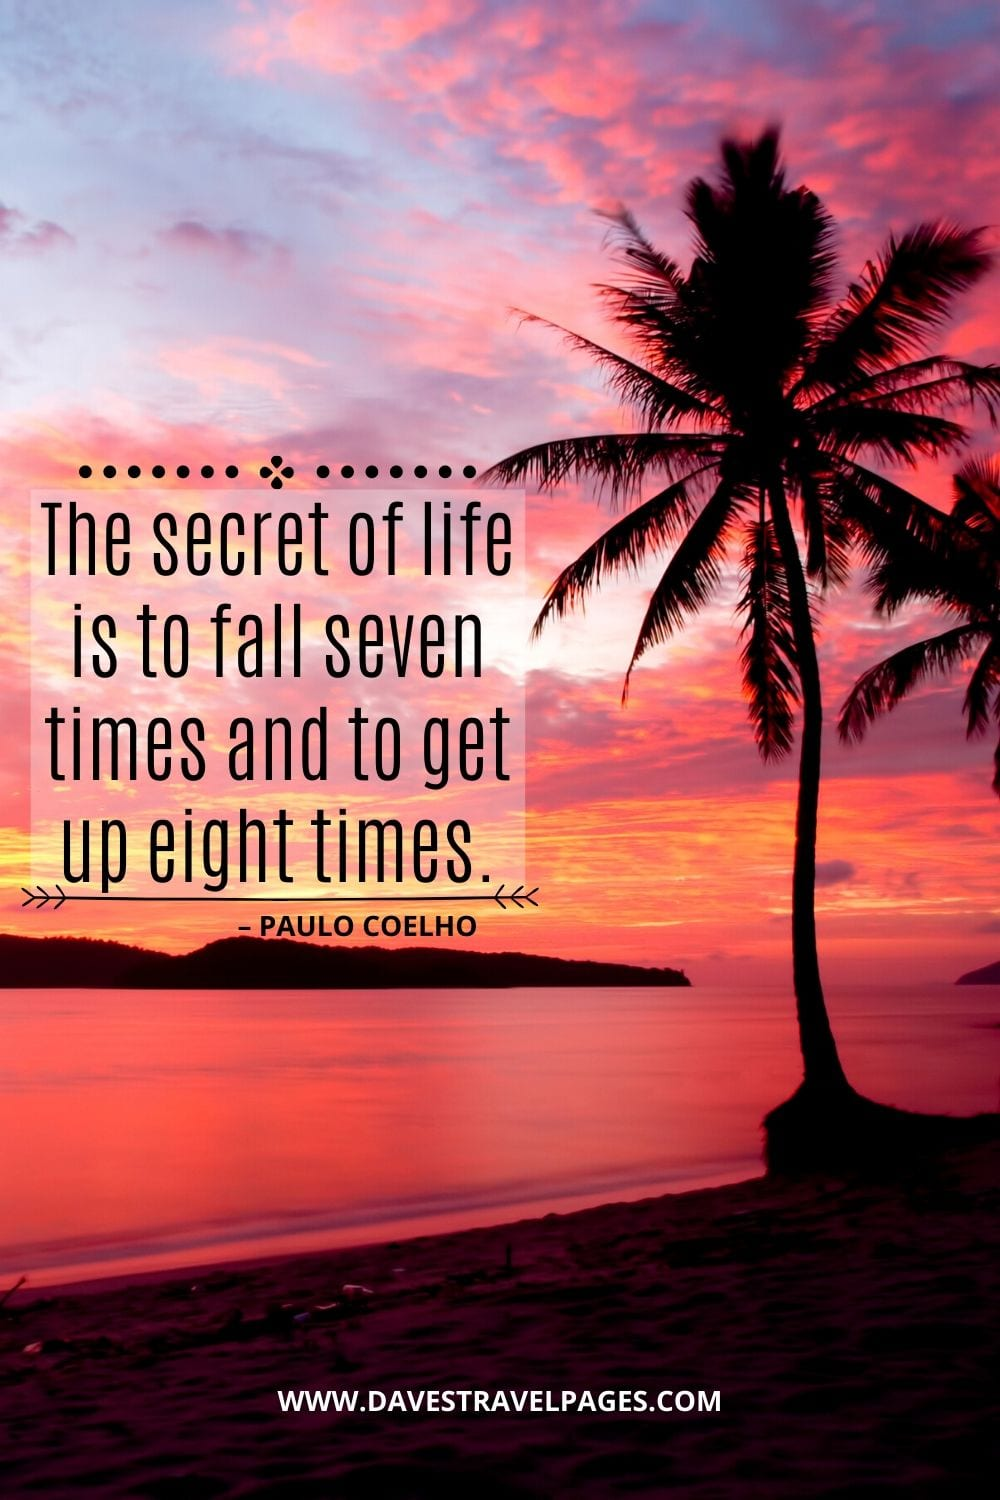 """The secret of life is to fall seven times and to get up eight times."" – Paulo Coelho Wisdom"